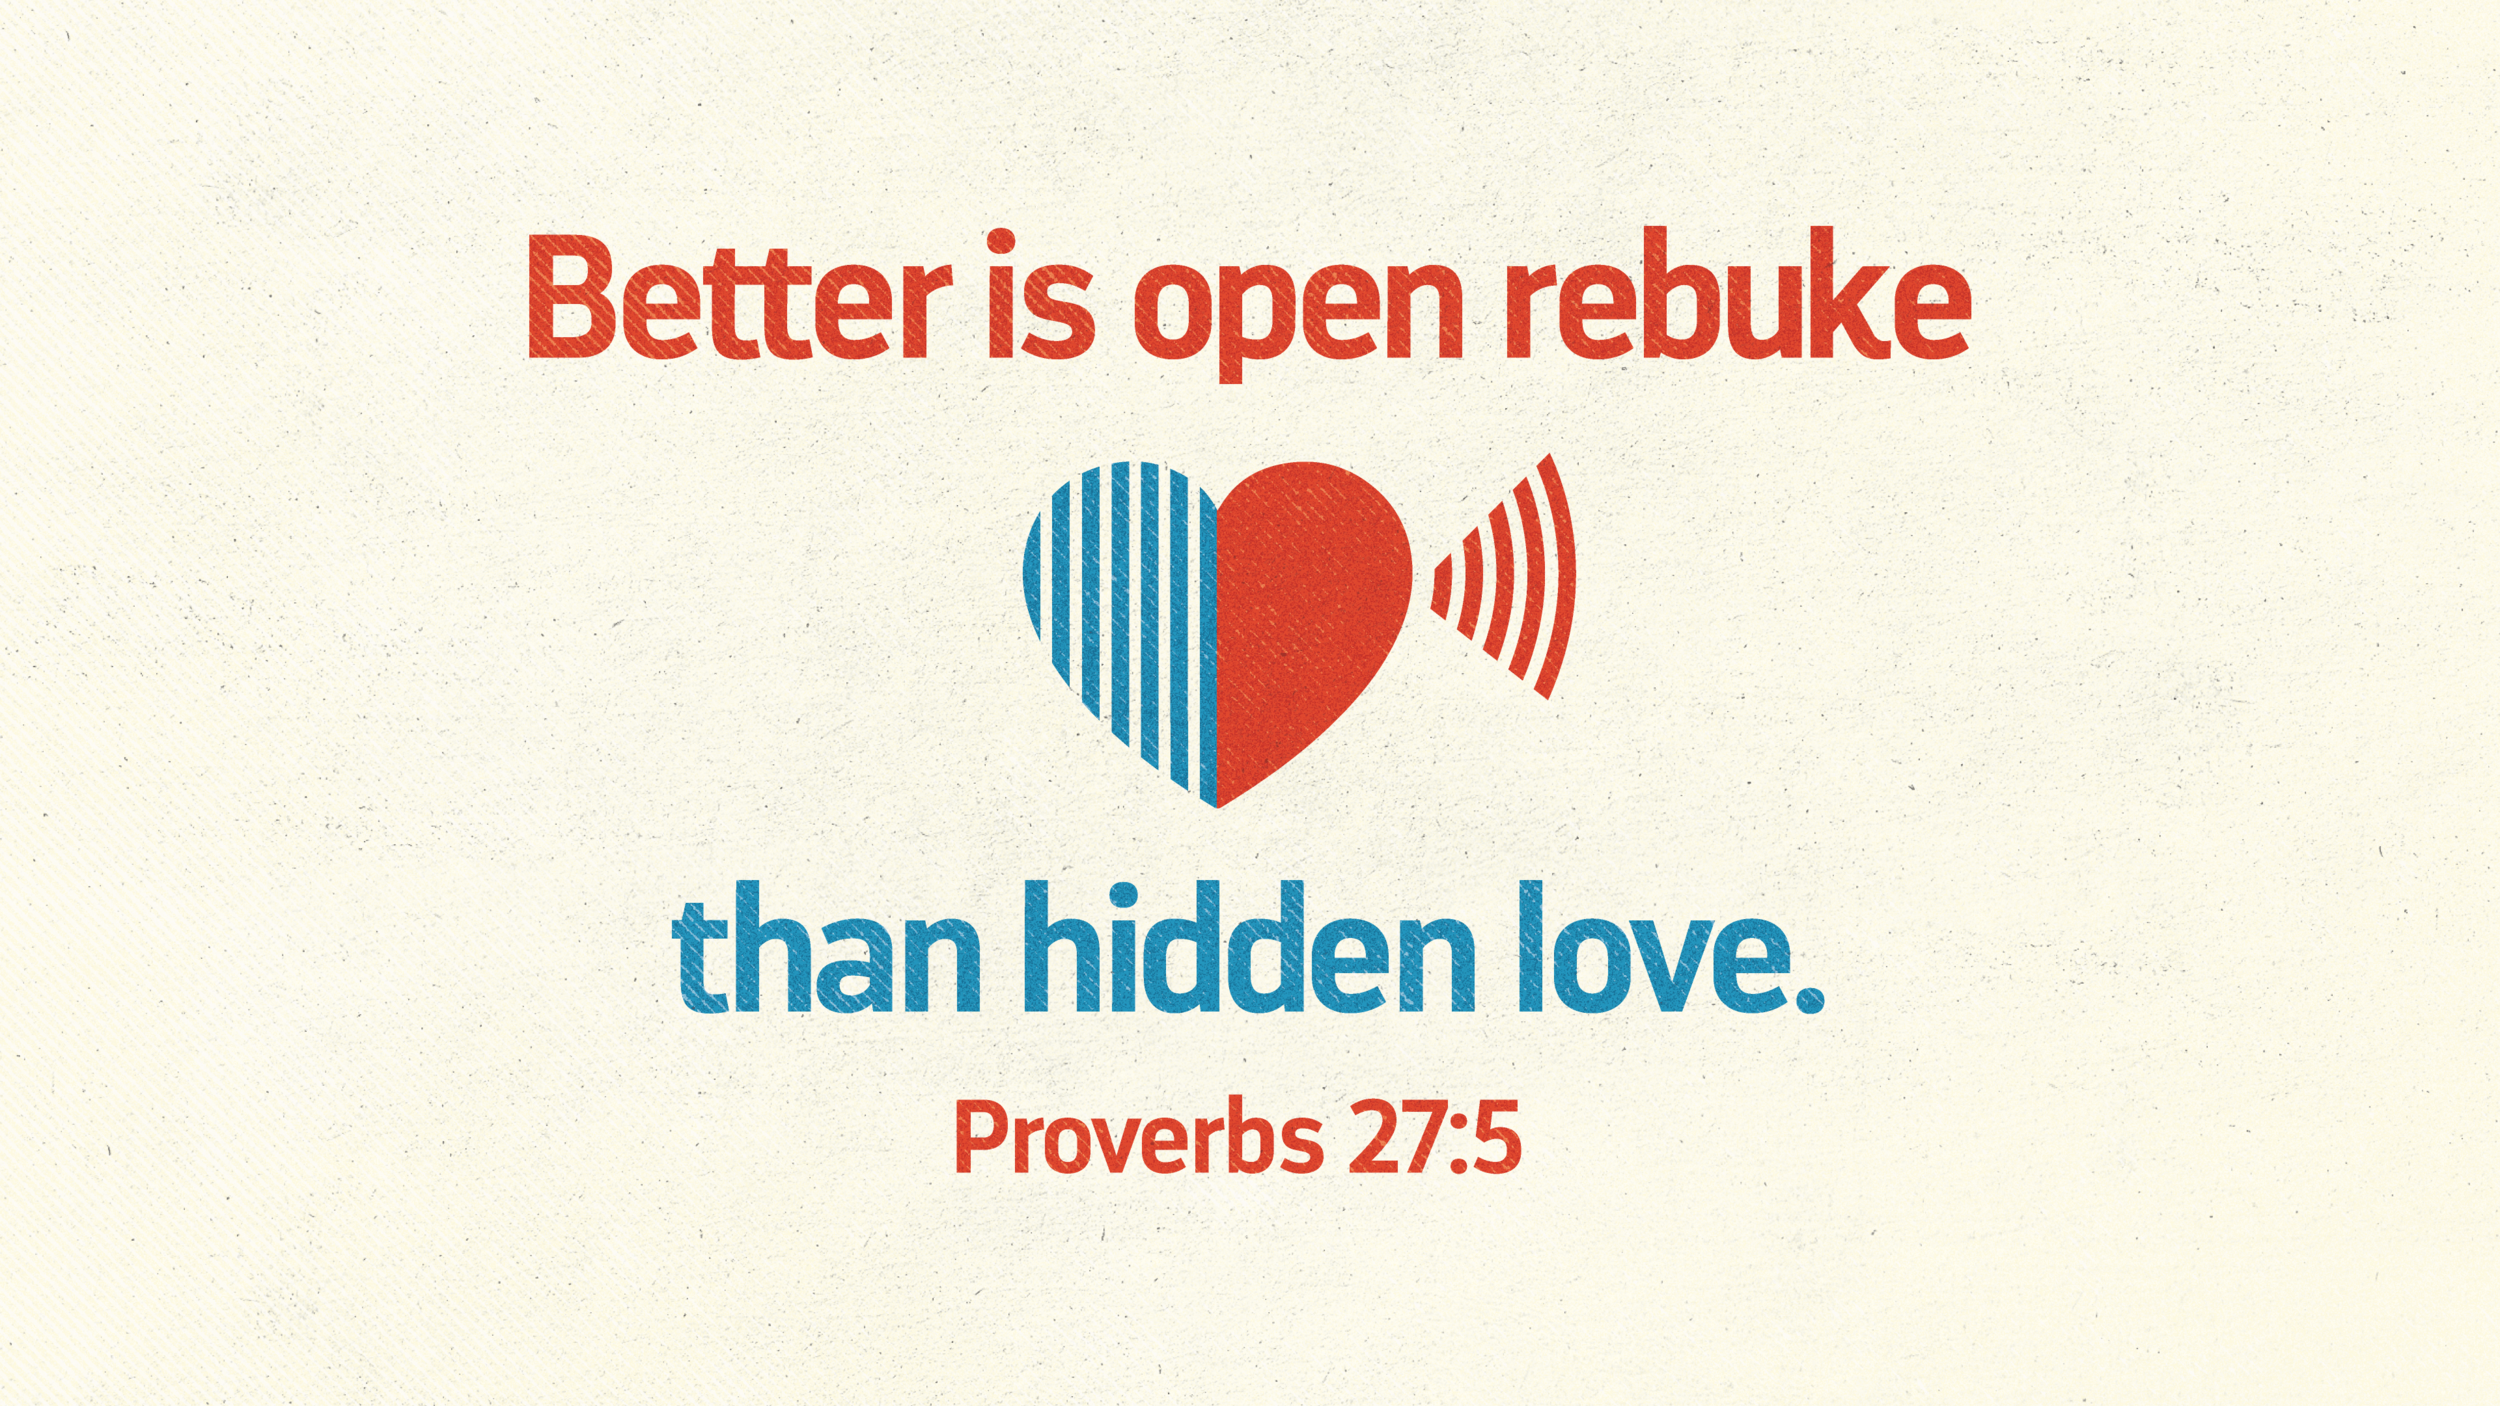 Proverbs_27_5-3840x2160.png